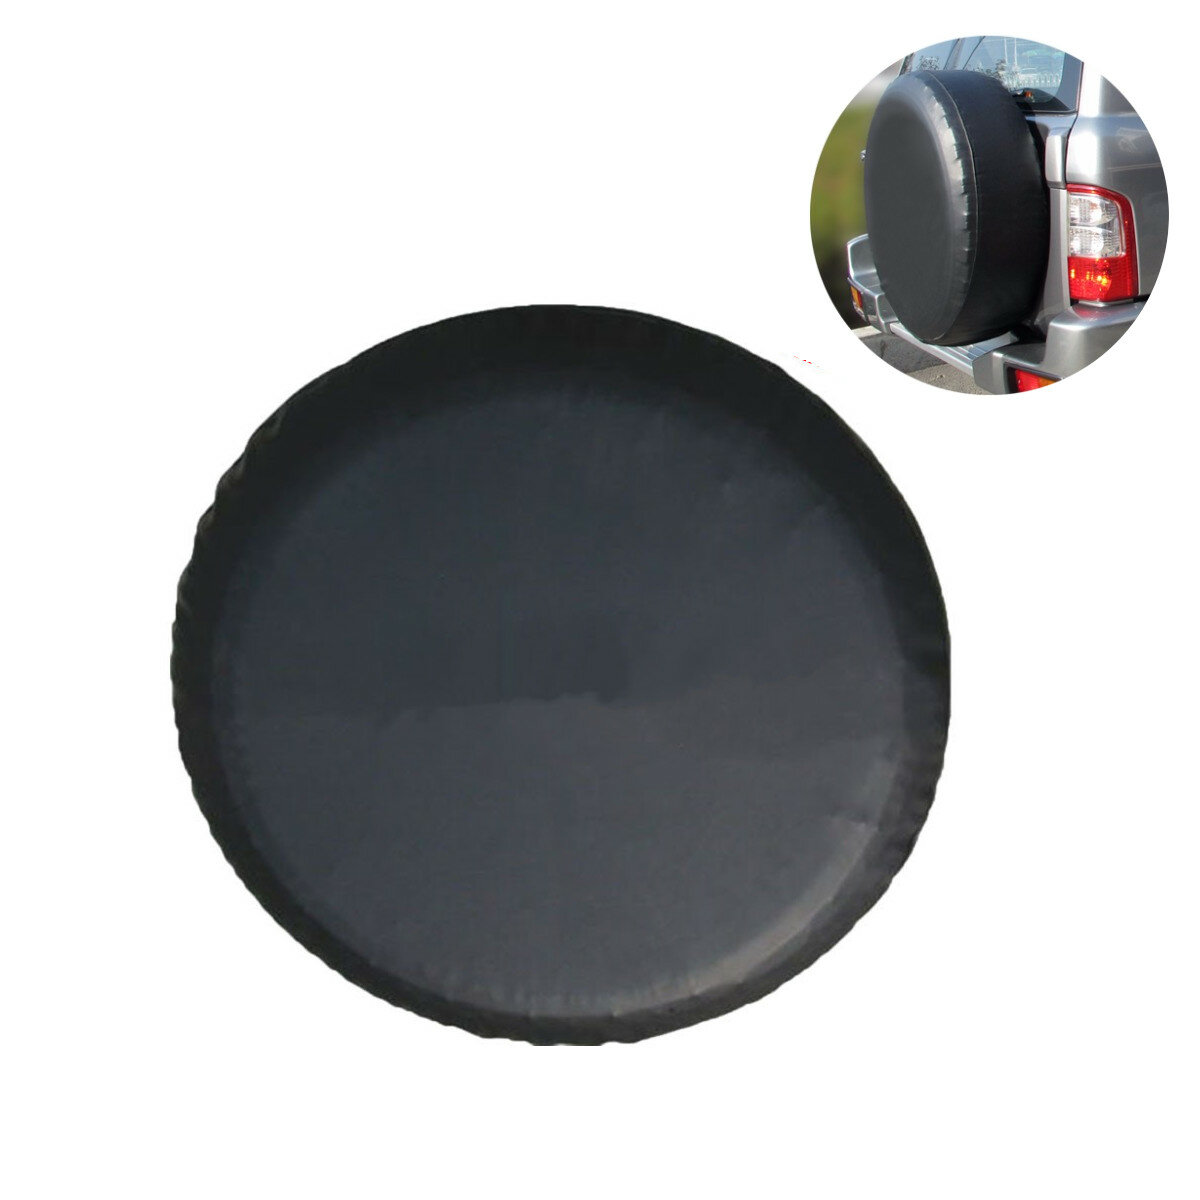 ce09bb8cc504 15 Inch Black PVC Leather Spare Wheel Tire Cover Waterproof Size M for  Jeep  Wrangler  SUV Car COD